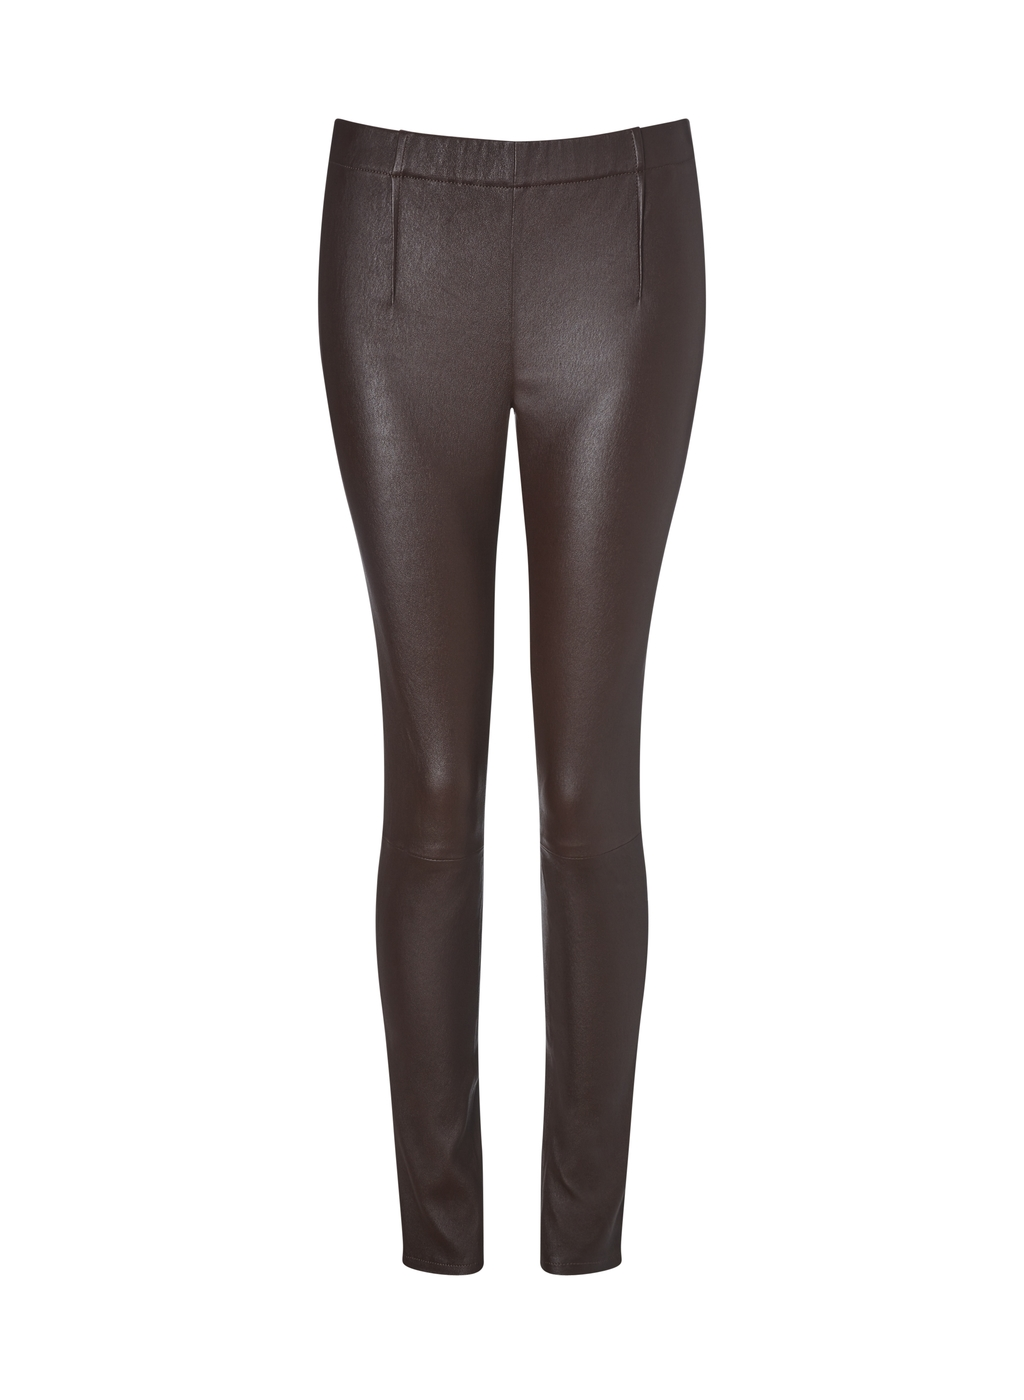 Womenswear Liv Leather Leggings - length: standard; pattern: plain; style: leggings; waist: mid/regular rise; predominant colour: black; occasions: evening, creative work; fibres: leather - 100%; texture group: leather; fit: skinny/tight leg; pattern type: fabric; season: a/w 2015